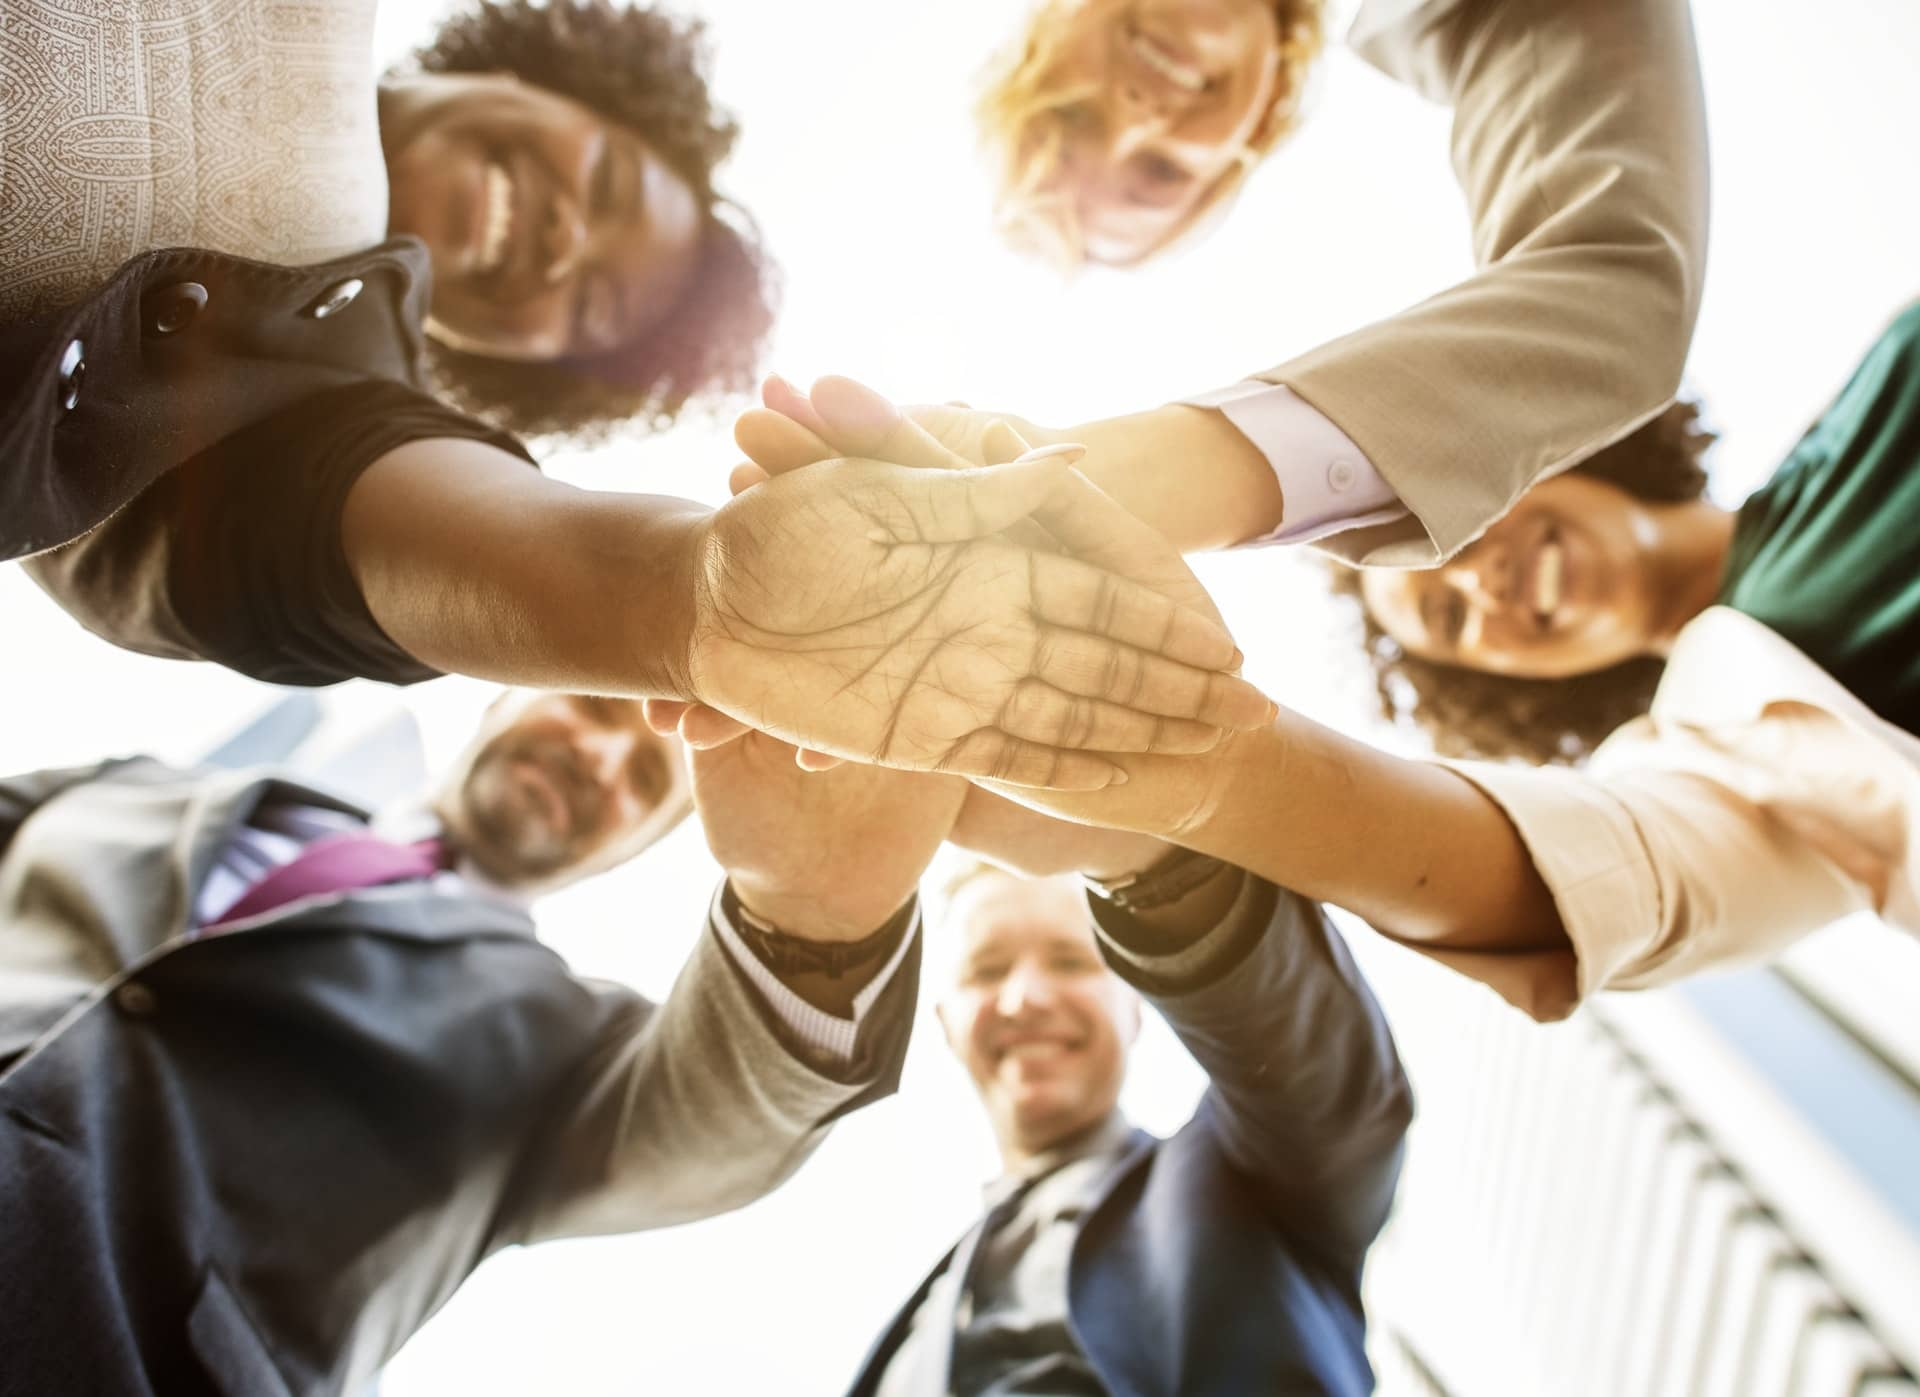 Team Building Exercises Make a Positive Difference